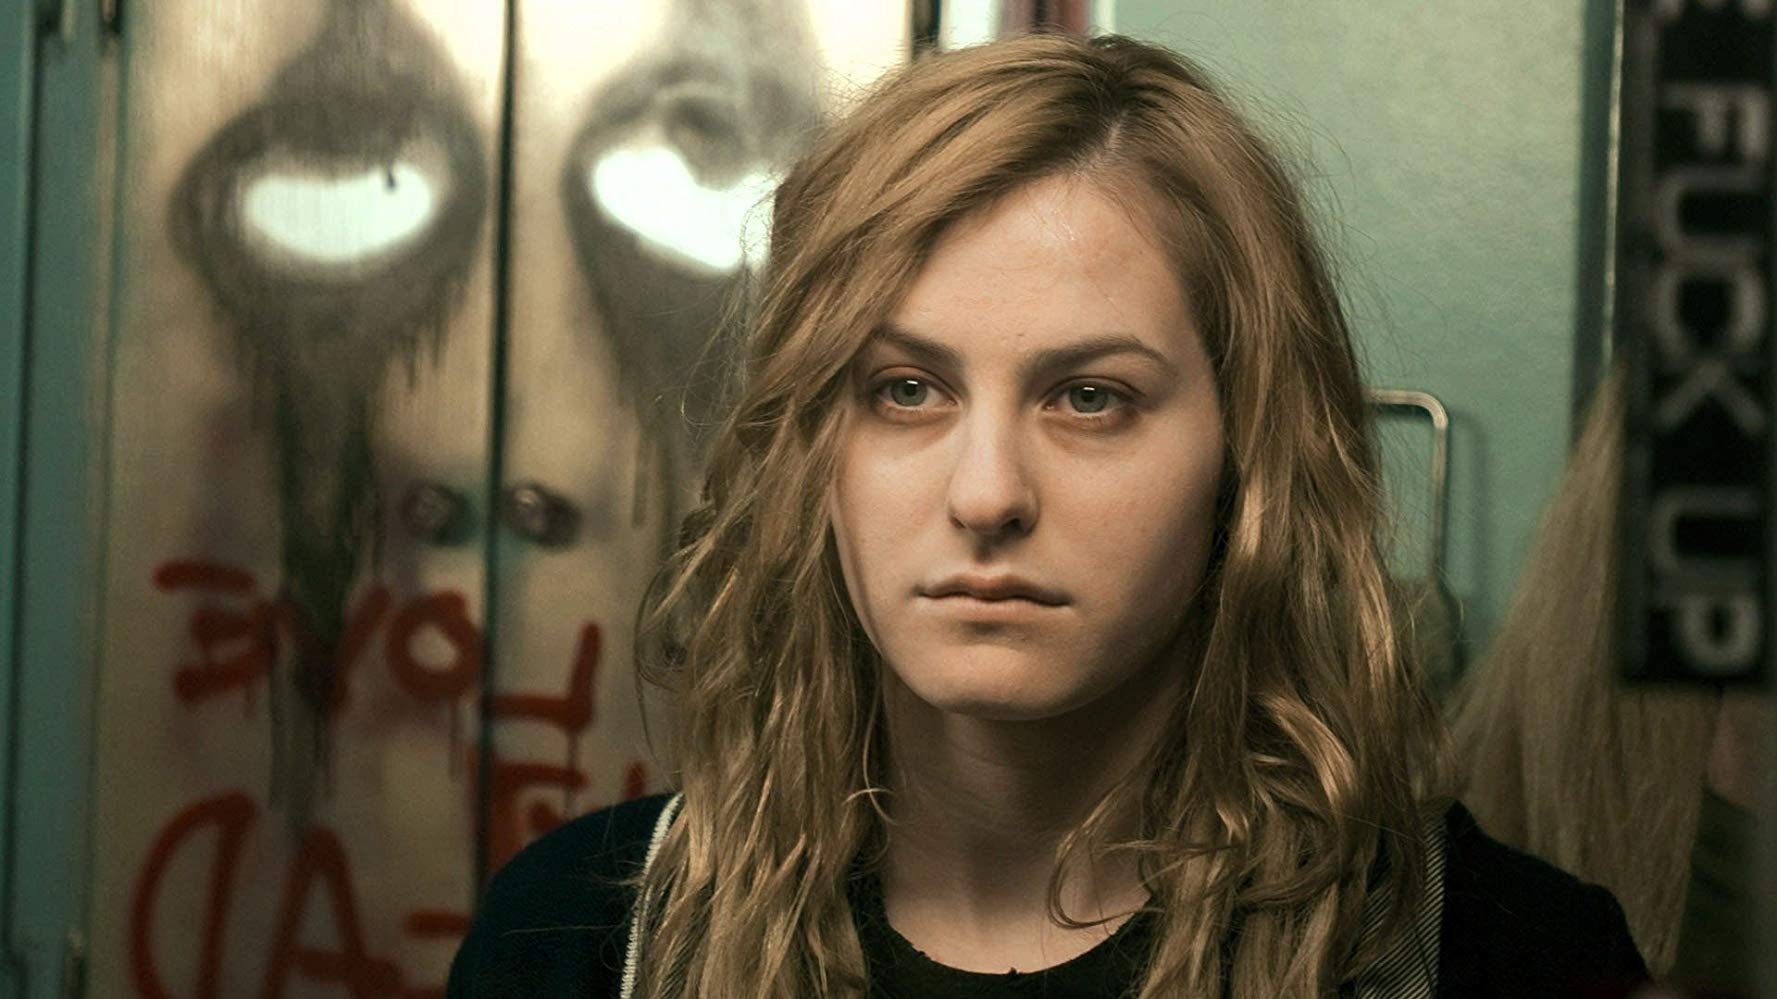 Scout Taylor-Compton in Halloween II (2009)